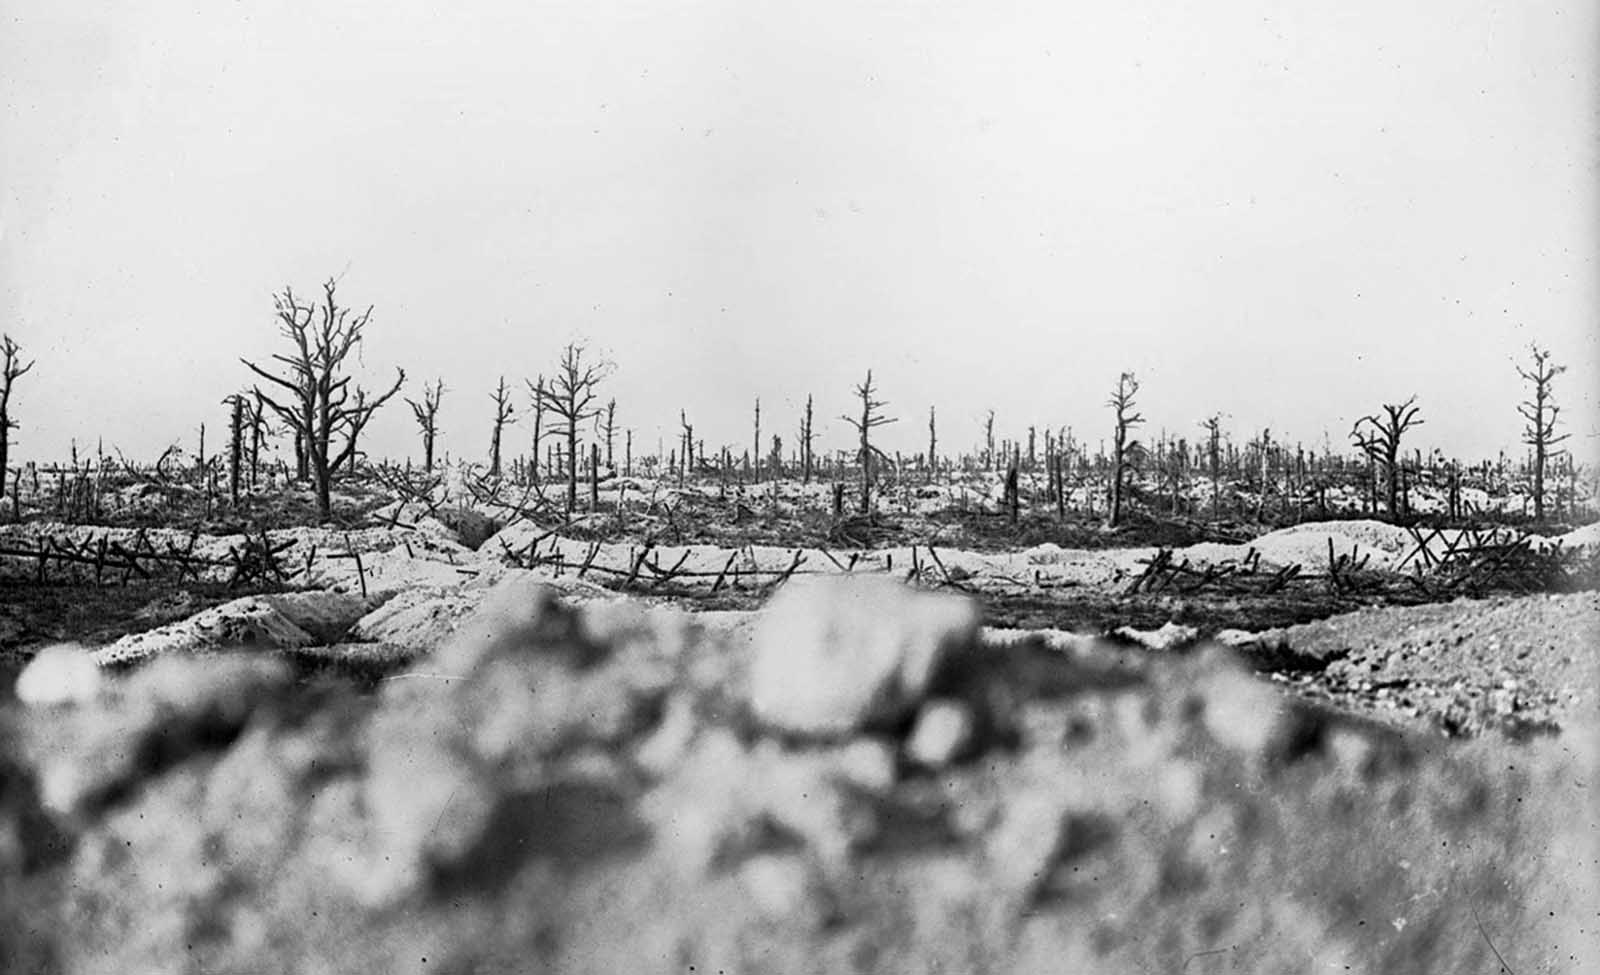 Battlefield in the Marne between Souain and Perthes, 1915.